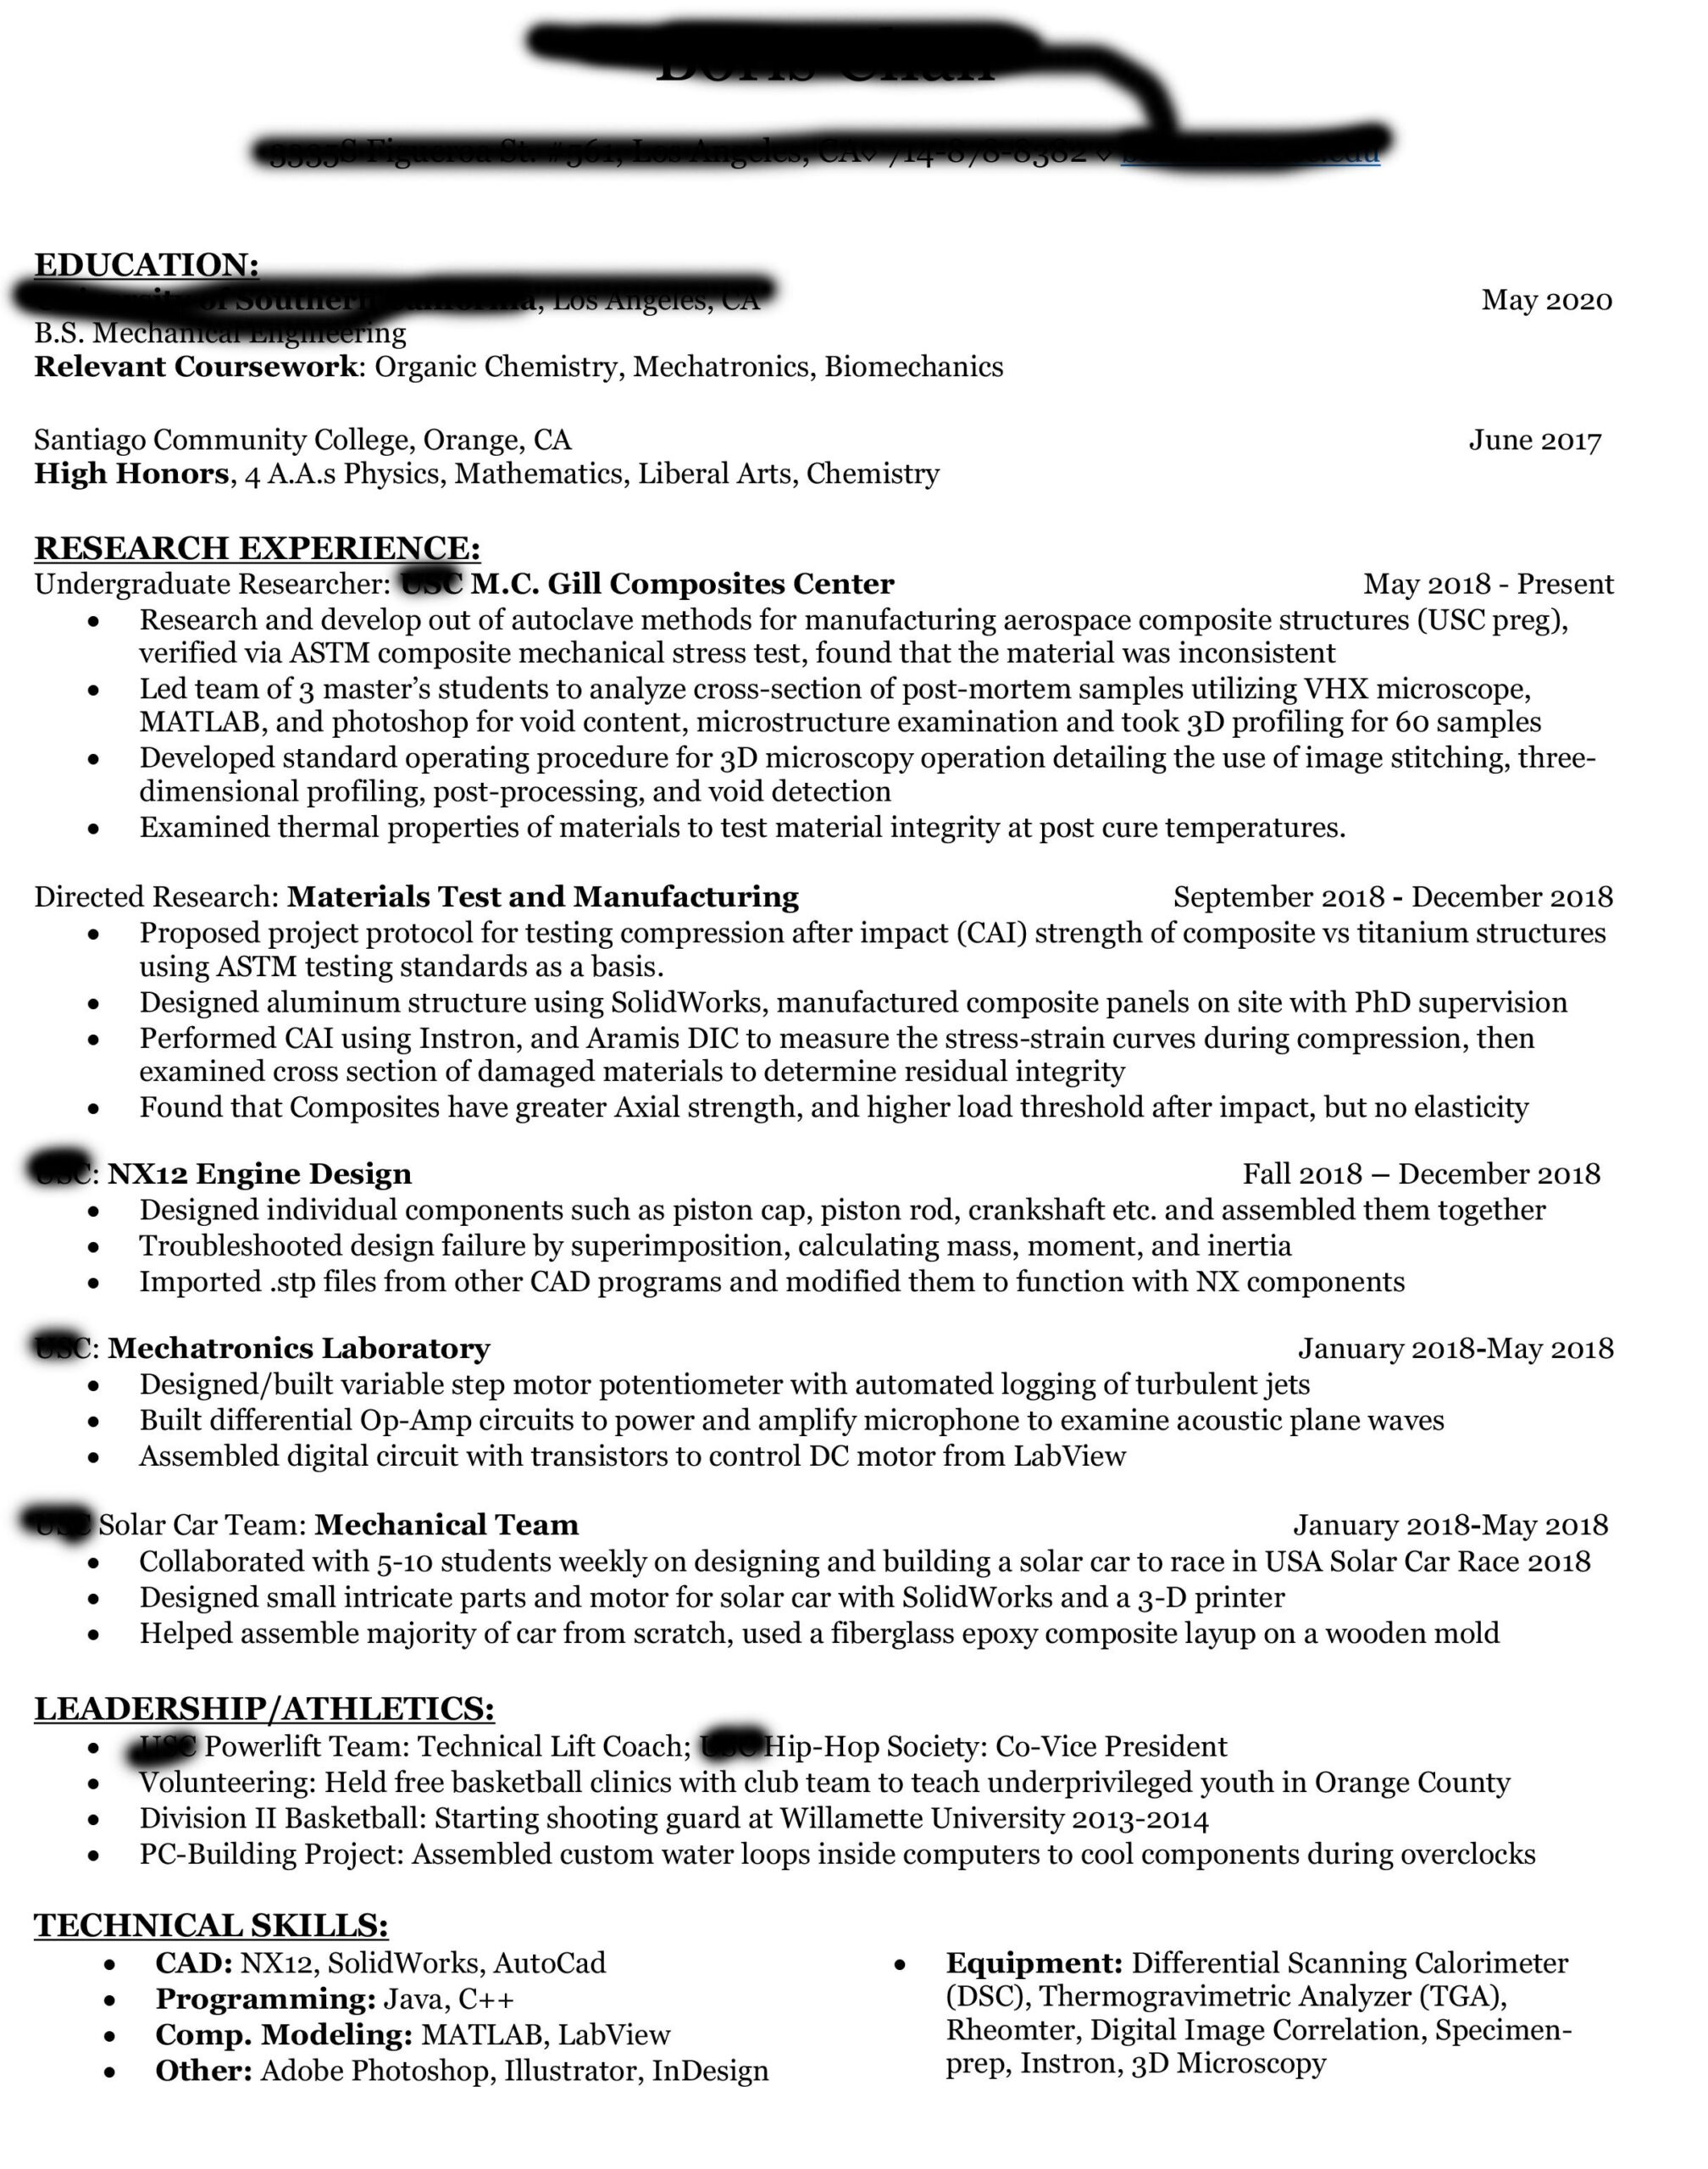 mechanical engineer student resume software intern reddit 82qzwhitntk21 sender objective Resume Software Engineer Intern Resume Reddit